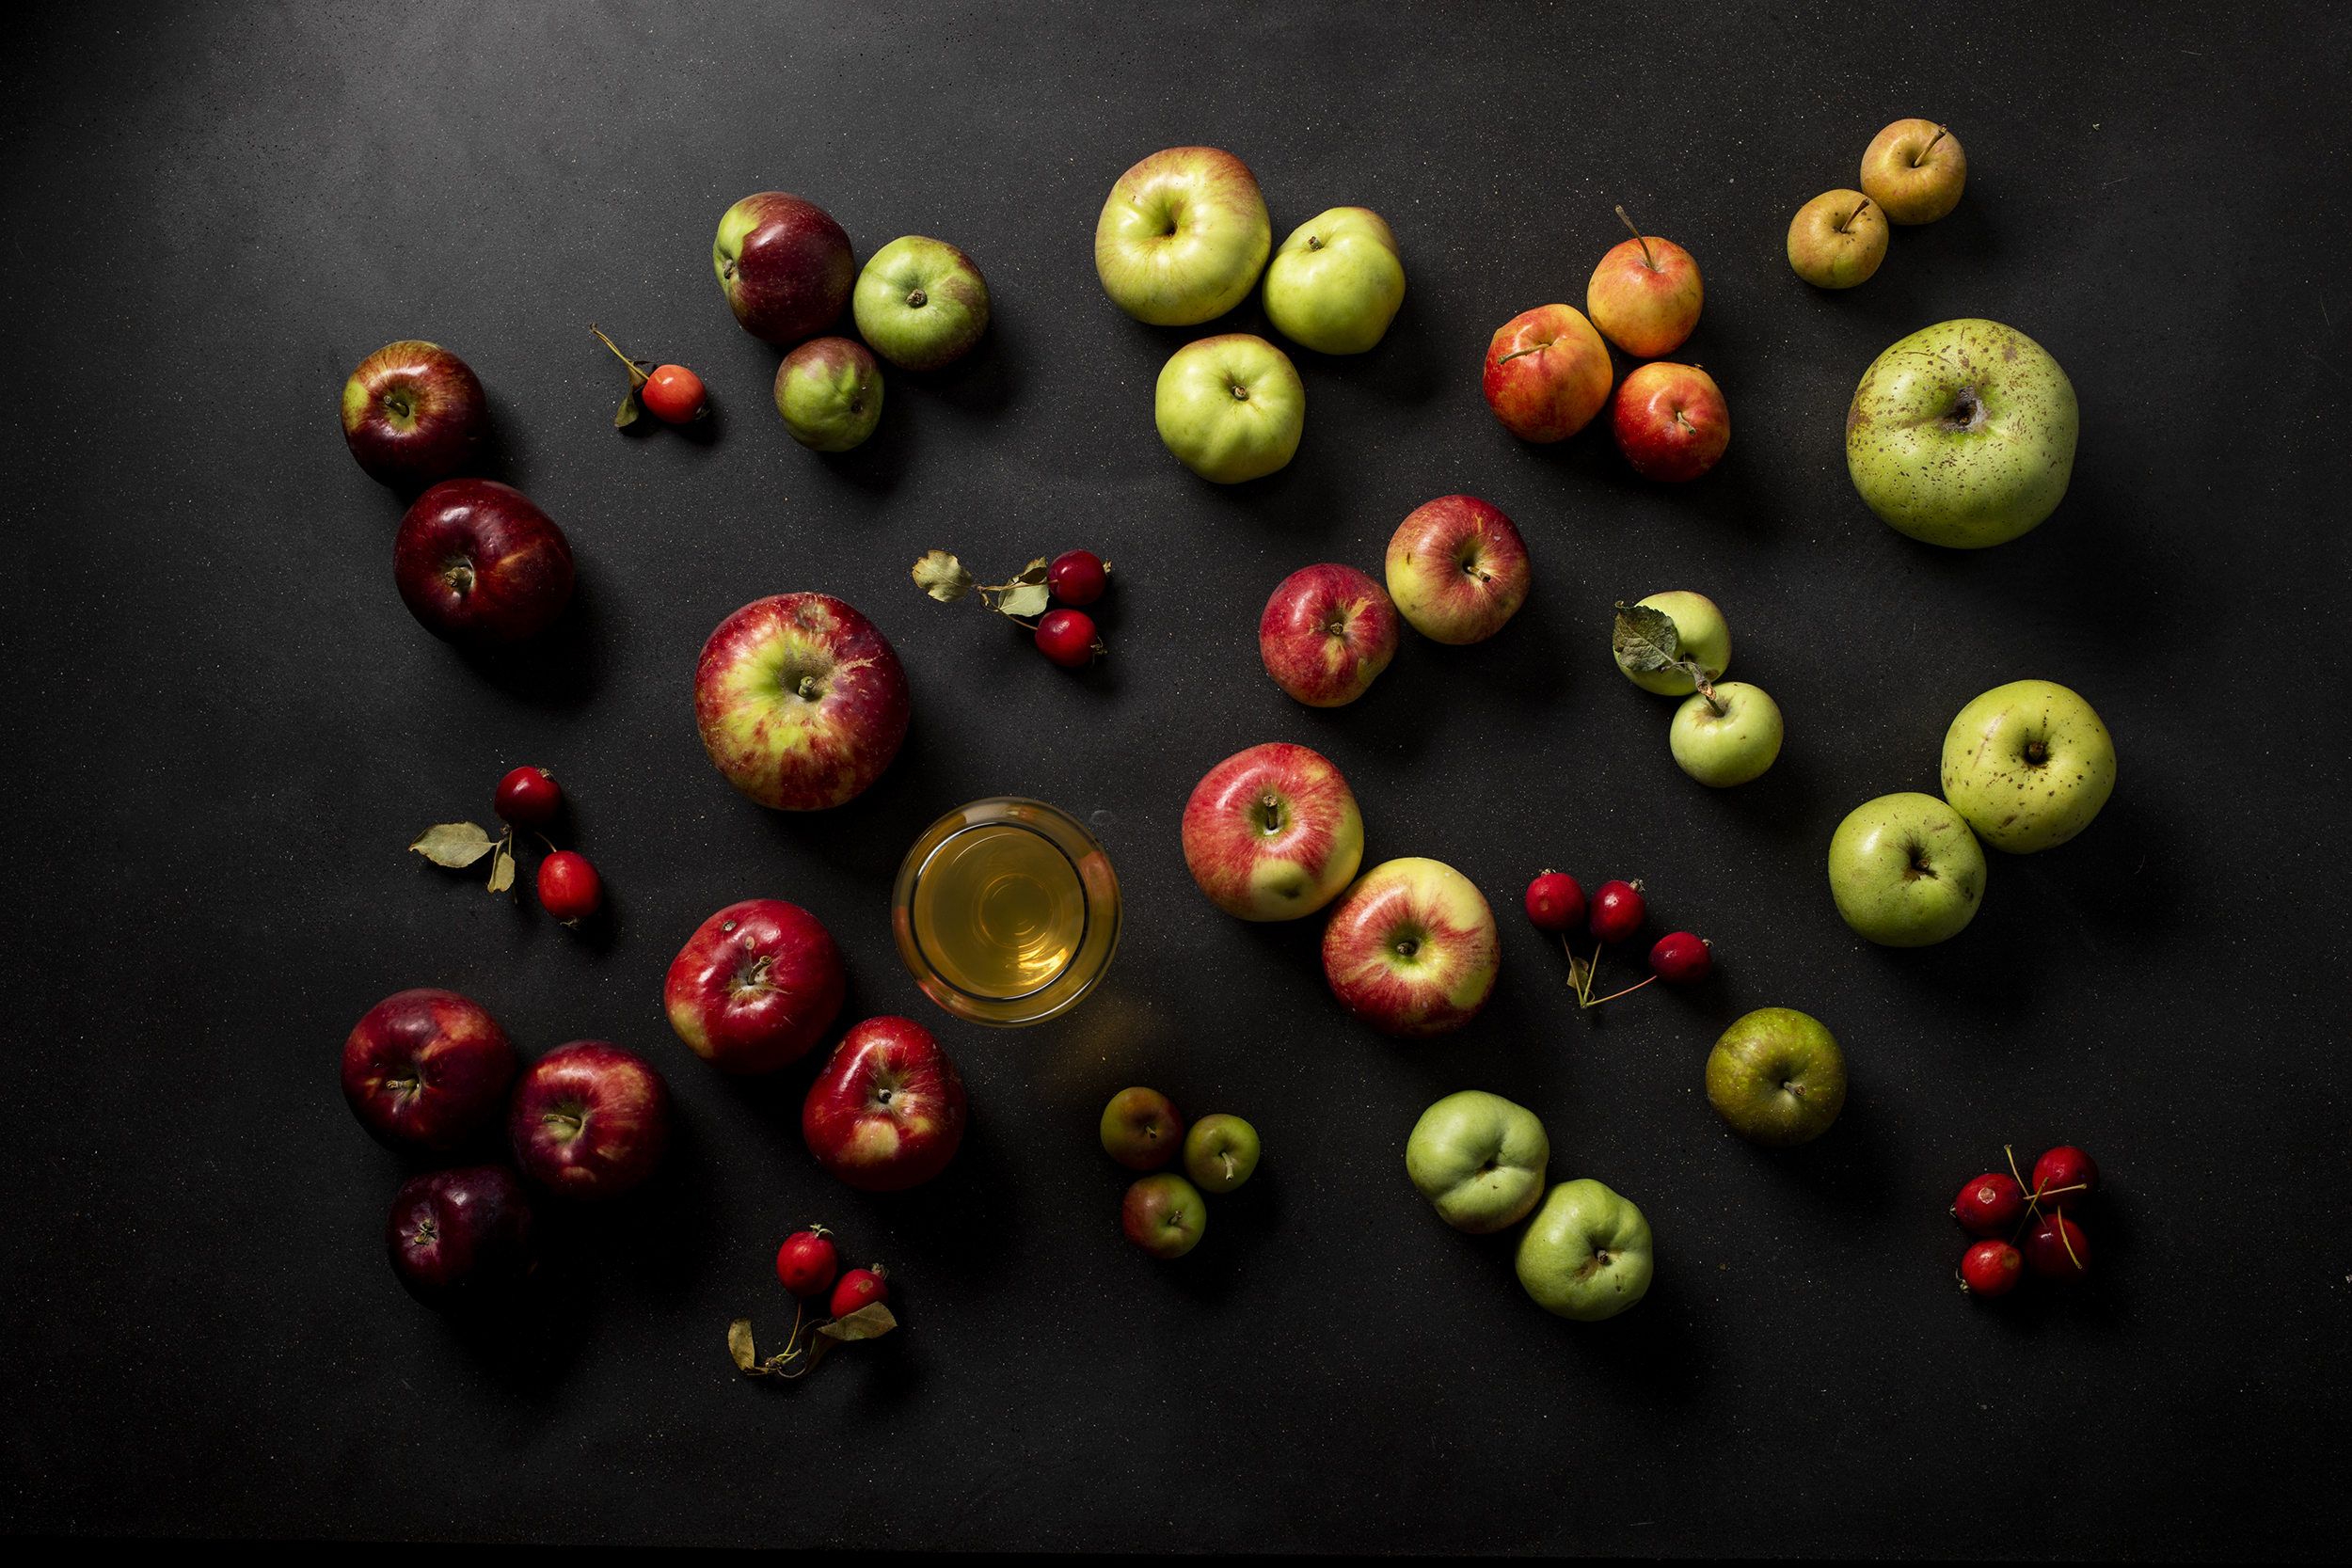 A variety of different cider apples // Photo by Tj Turner